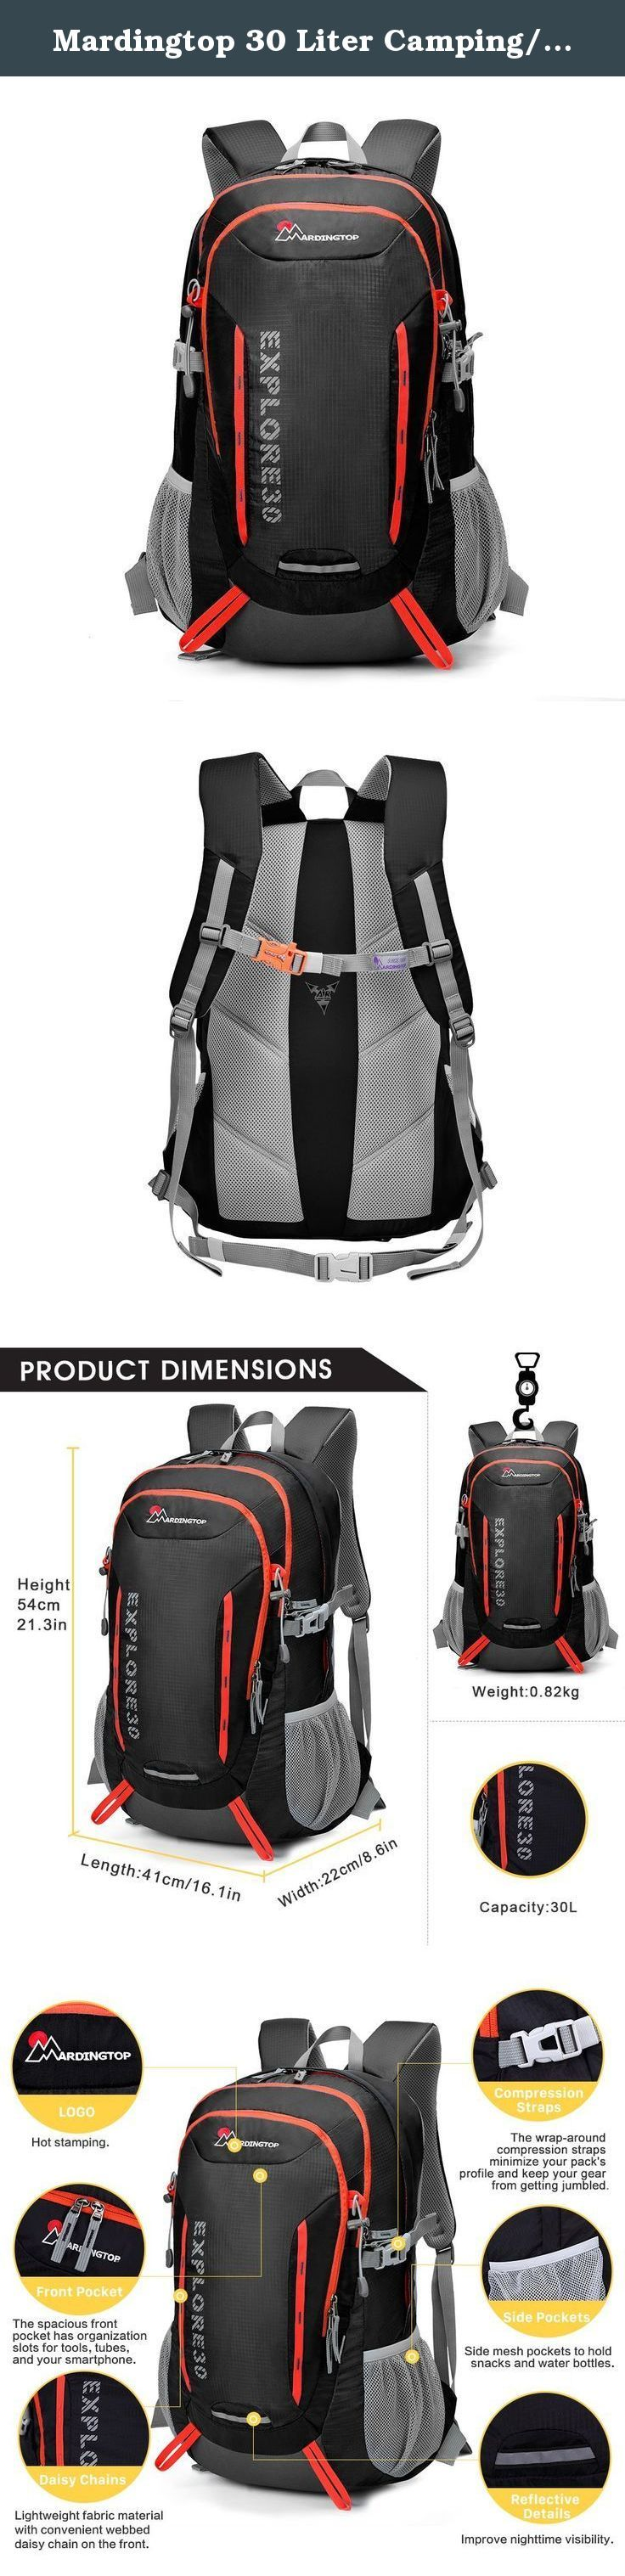 Mardingtop 30 Liter Camping/Travel/Hiking Backpack-5943. Product Dimensions Height 54cm/21.3in Length 41cm/16.1in Width 22cm/8.6in Weight: 0.82kg / 1.8 lbs Capacity: 1.Daisy Chains:Lightweight fabric material with convenient webbed daisy chain on the front. 2.Side Pockets:Side mesh pockets to hold snacks and water bottles. 3.Sternum Strap:Adjustable sternum strap to balance your shoulder straps. 4.Whistle Buckle:Emergency whistle buckle higher safety factor. 5.Bartack Technology:Stitched...